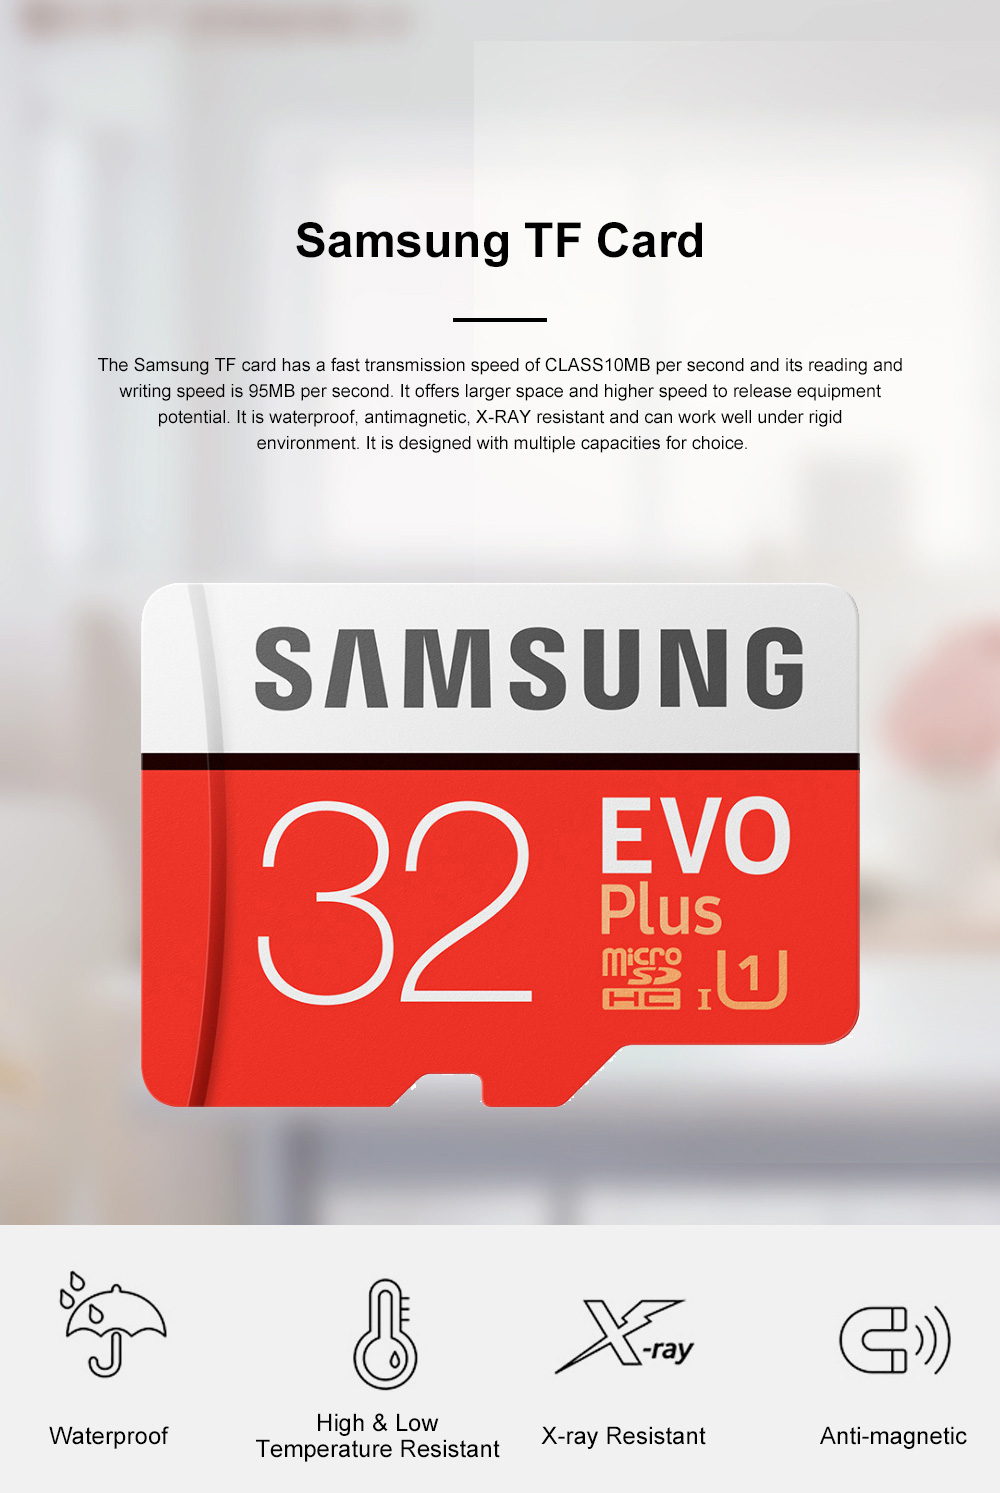 Samsung Class 10 Waterproof TF Card Antimagnetic Reliable Micro SD Card Compatible for Smart Phones Laptops Auto Mobile Data Recorder 0